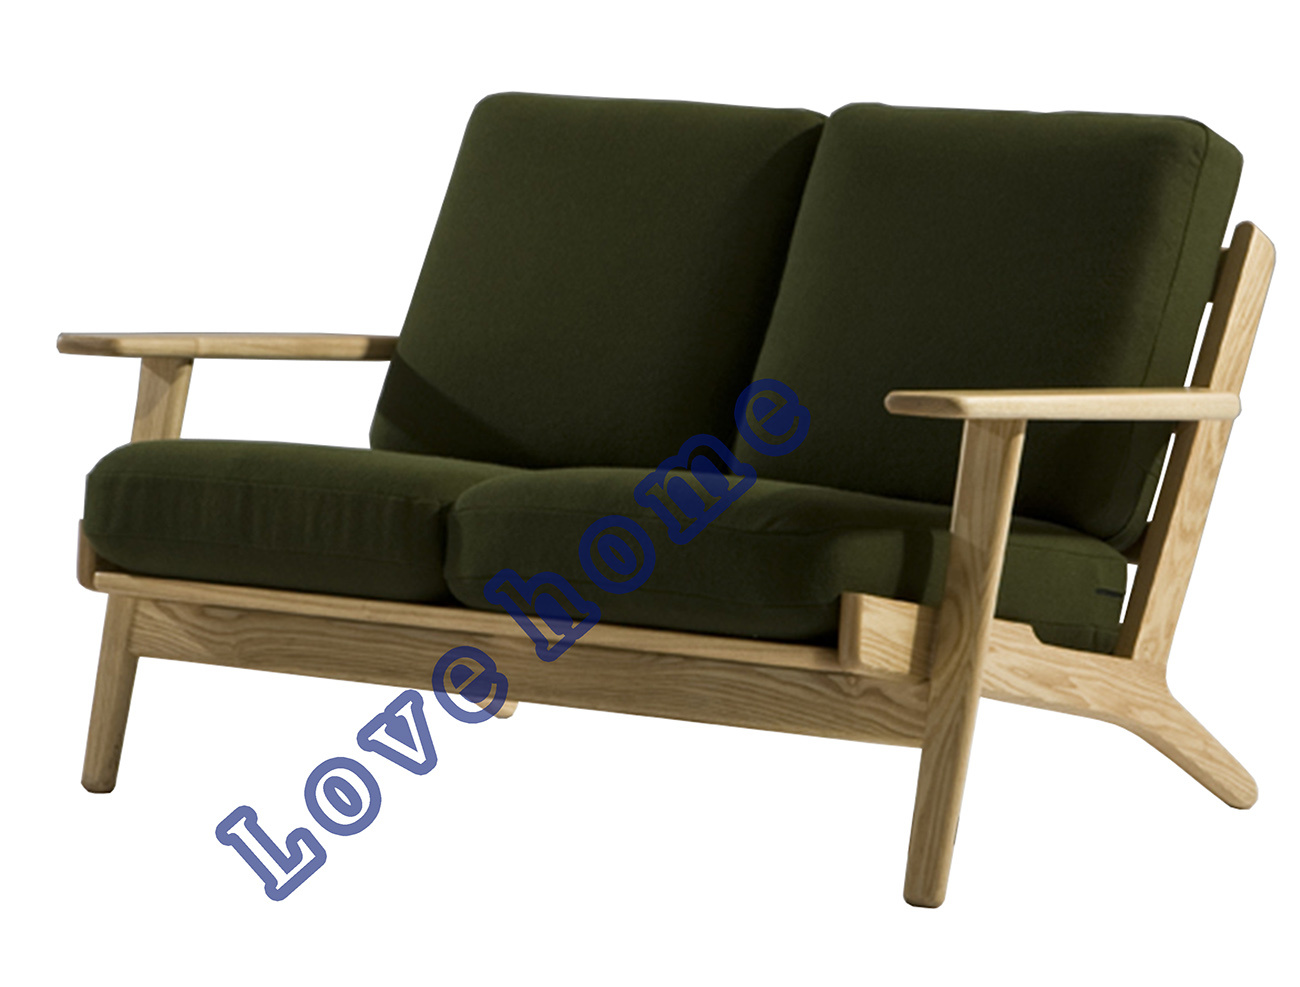 China Modern Dining Coffee Leisure Living Hans Wegner Plank Wooden Sofa Photos Pictures Made